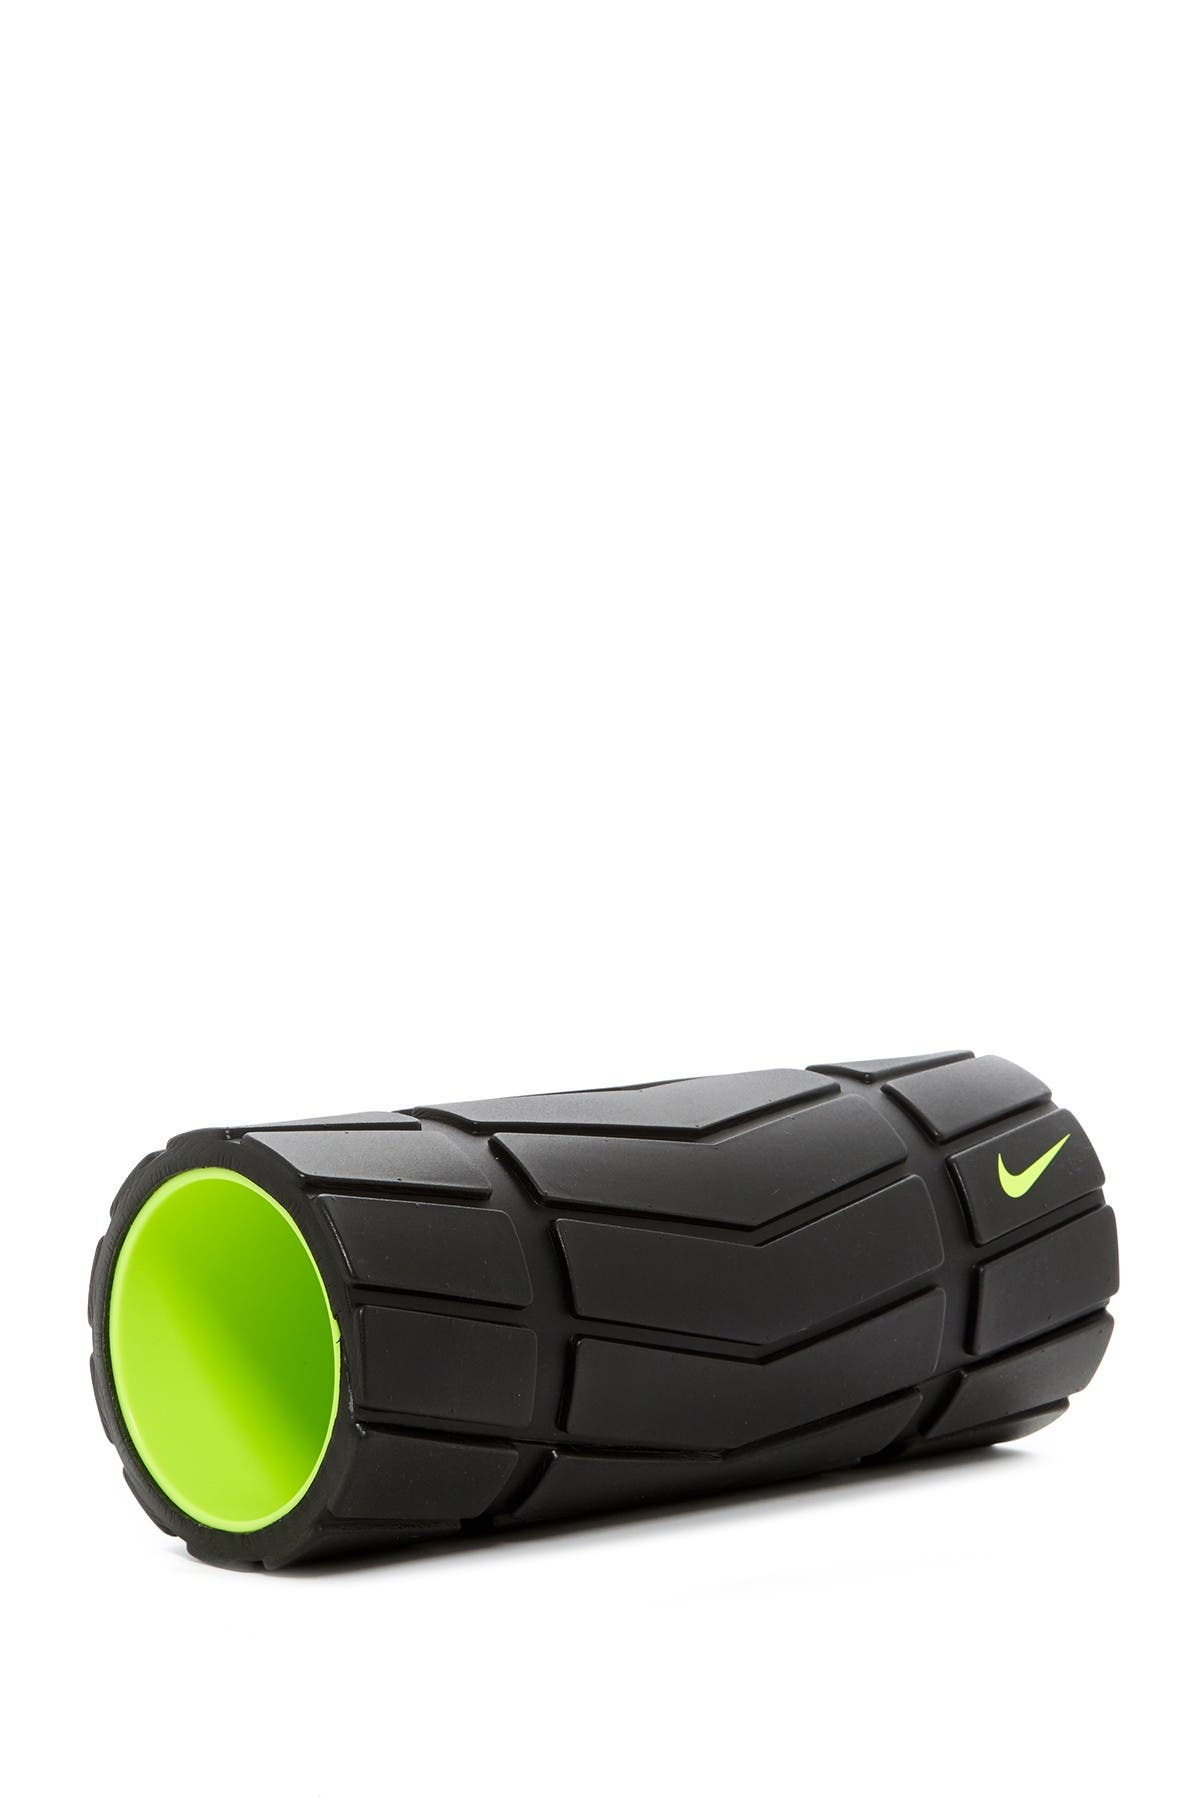 montar siga adelante chasquido  Nike | Recovery Foam Roller | Nordstrom Rack